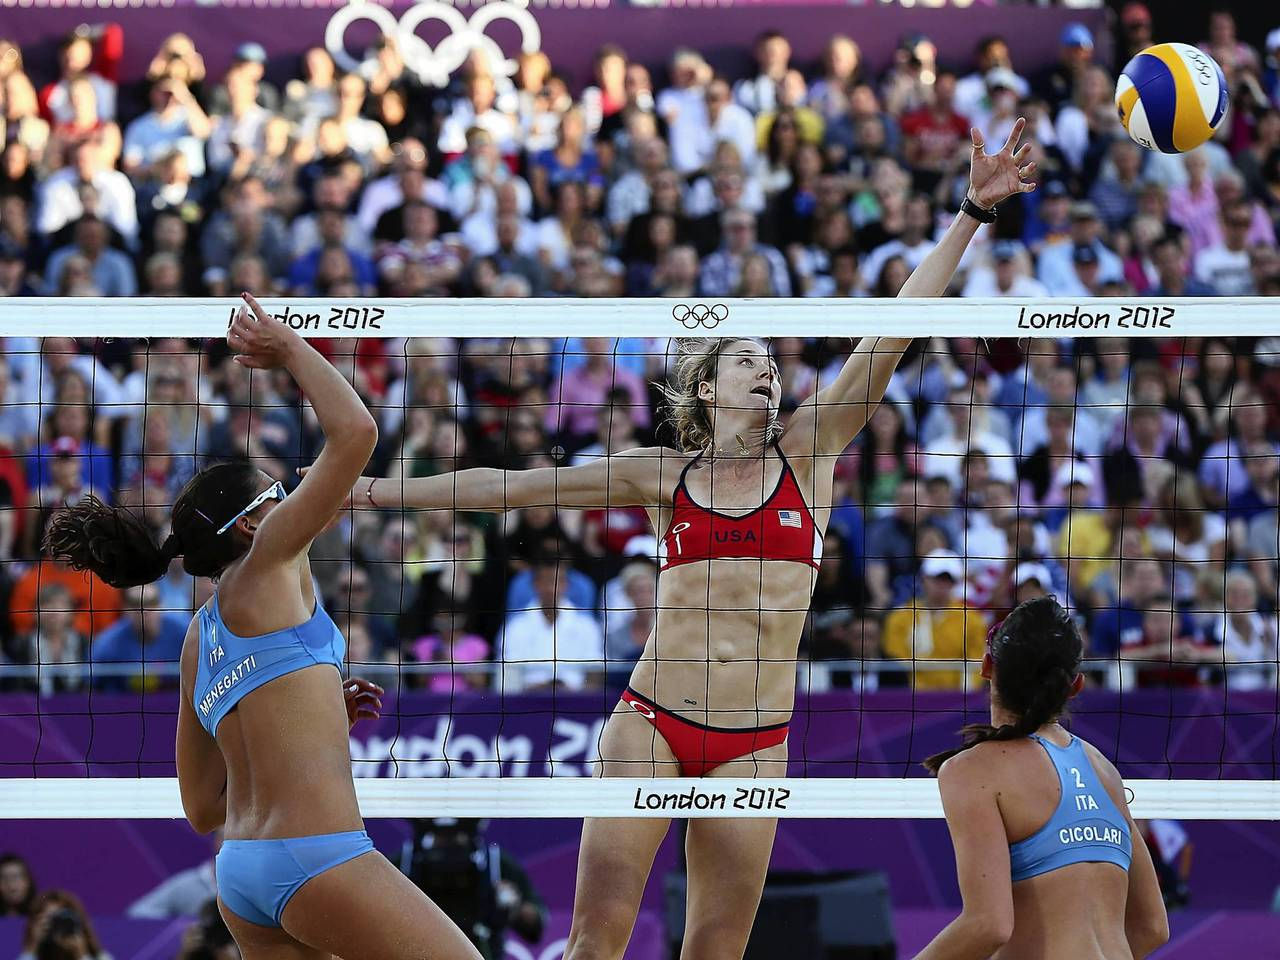 Kerry Jennings-Walsh stretches, but can't reach a spiked ball by Italy's Marta Menegatti, left, during the women's beach volleyball quarterfinal match.